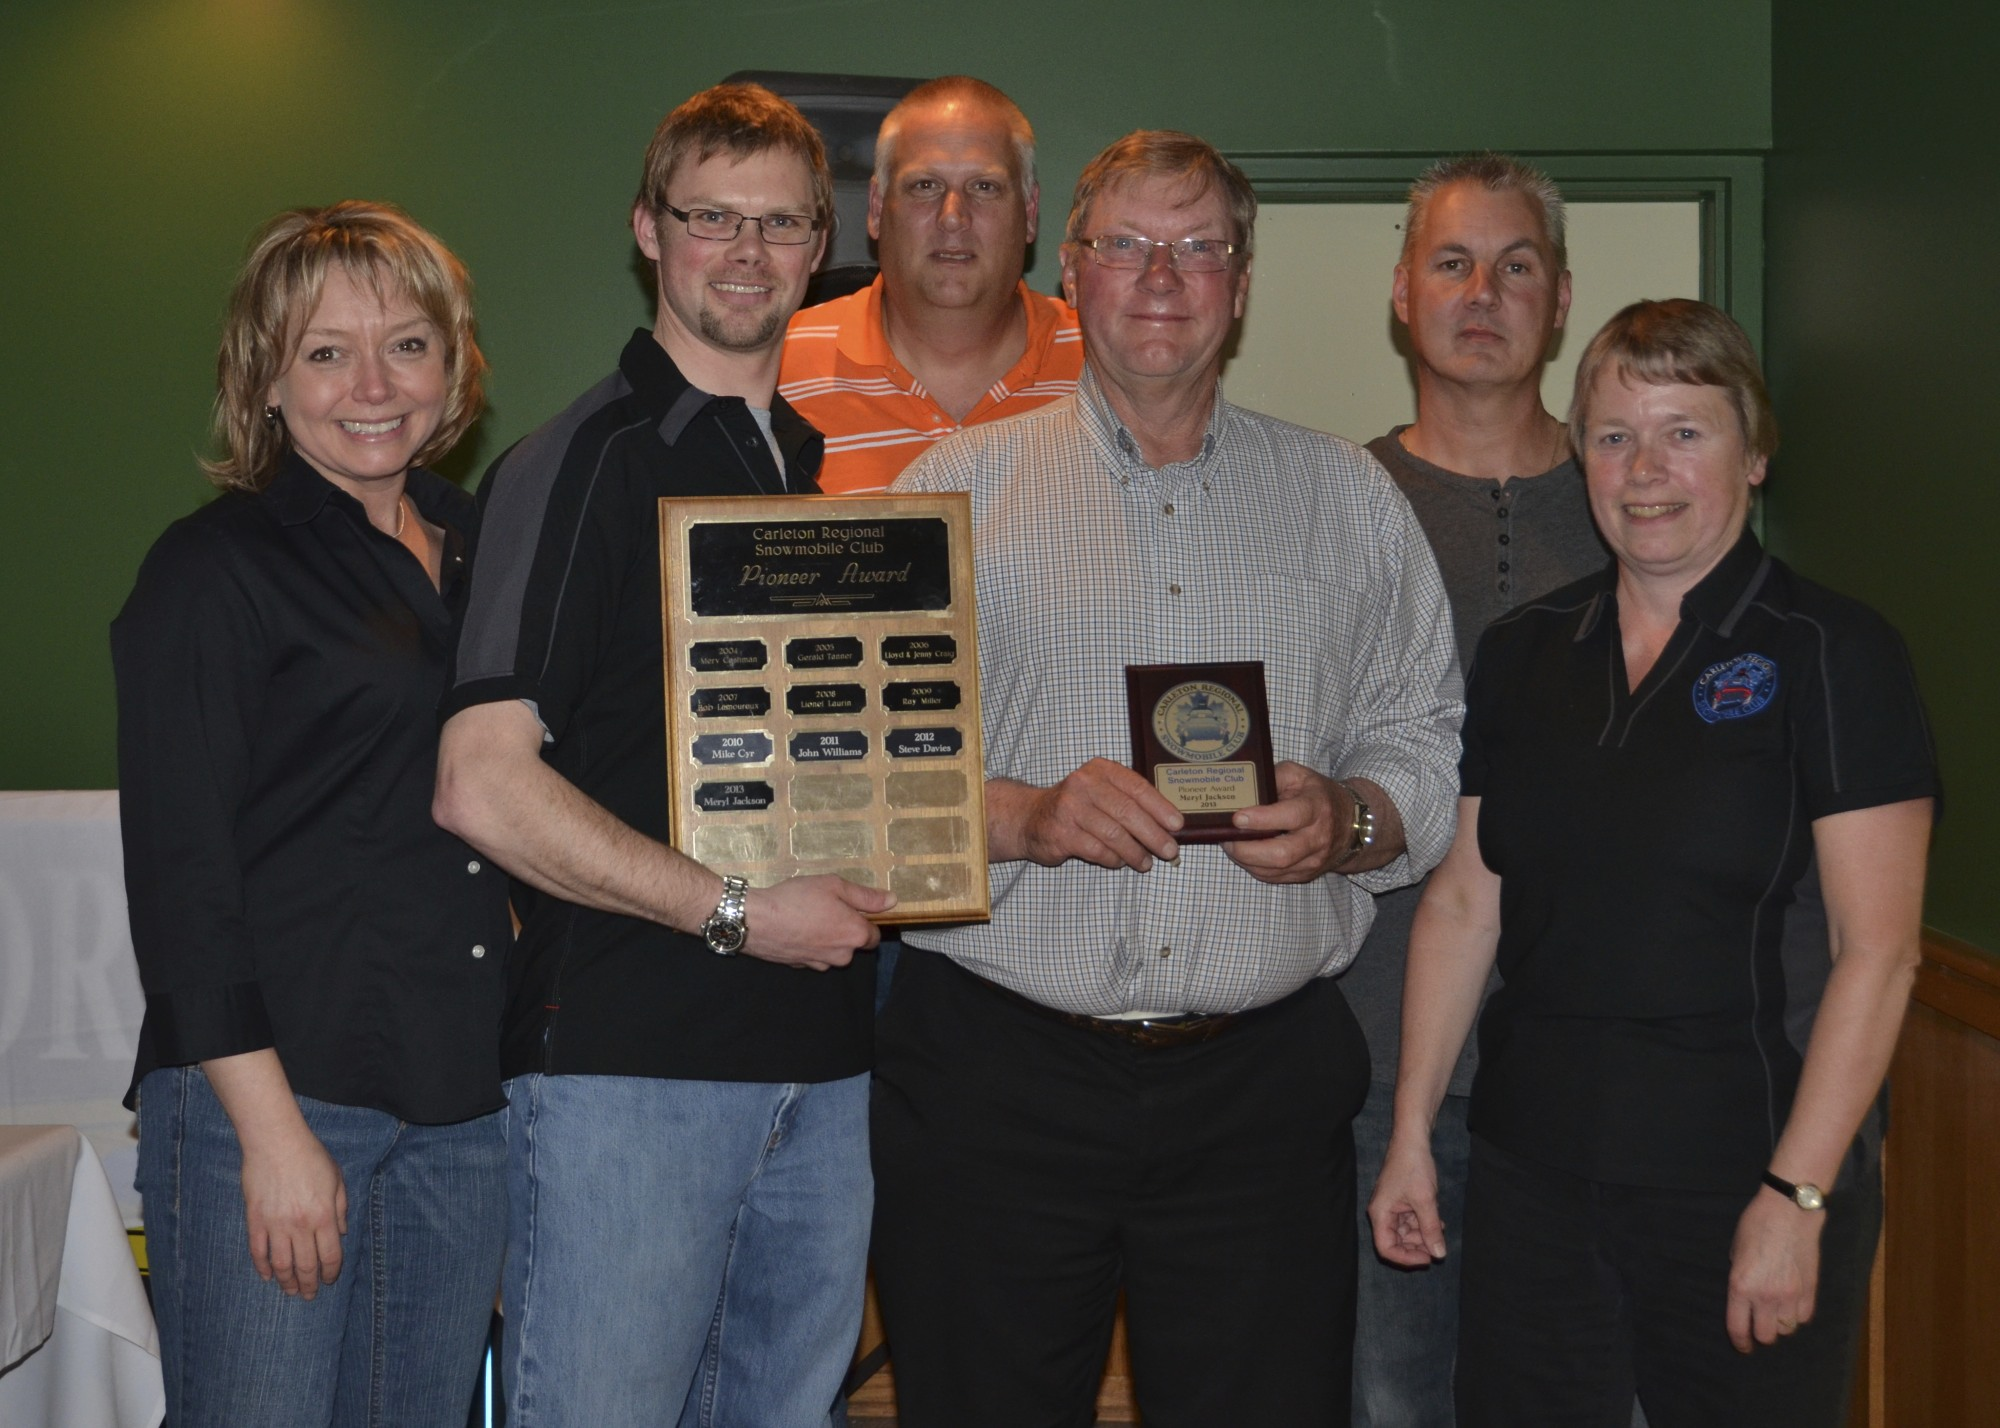 2012-2013 CRSC Pioneer Award Recipient - Meryl Jackson L-R Shelley, Tim, Dean, Meryl, Rick and Debbie